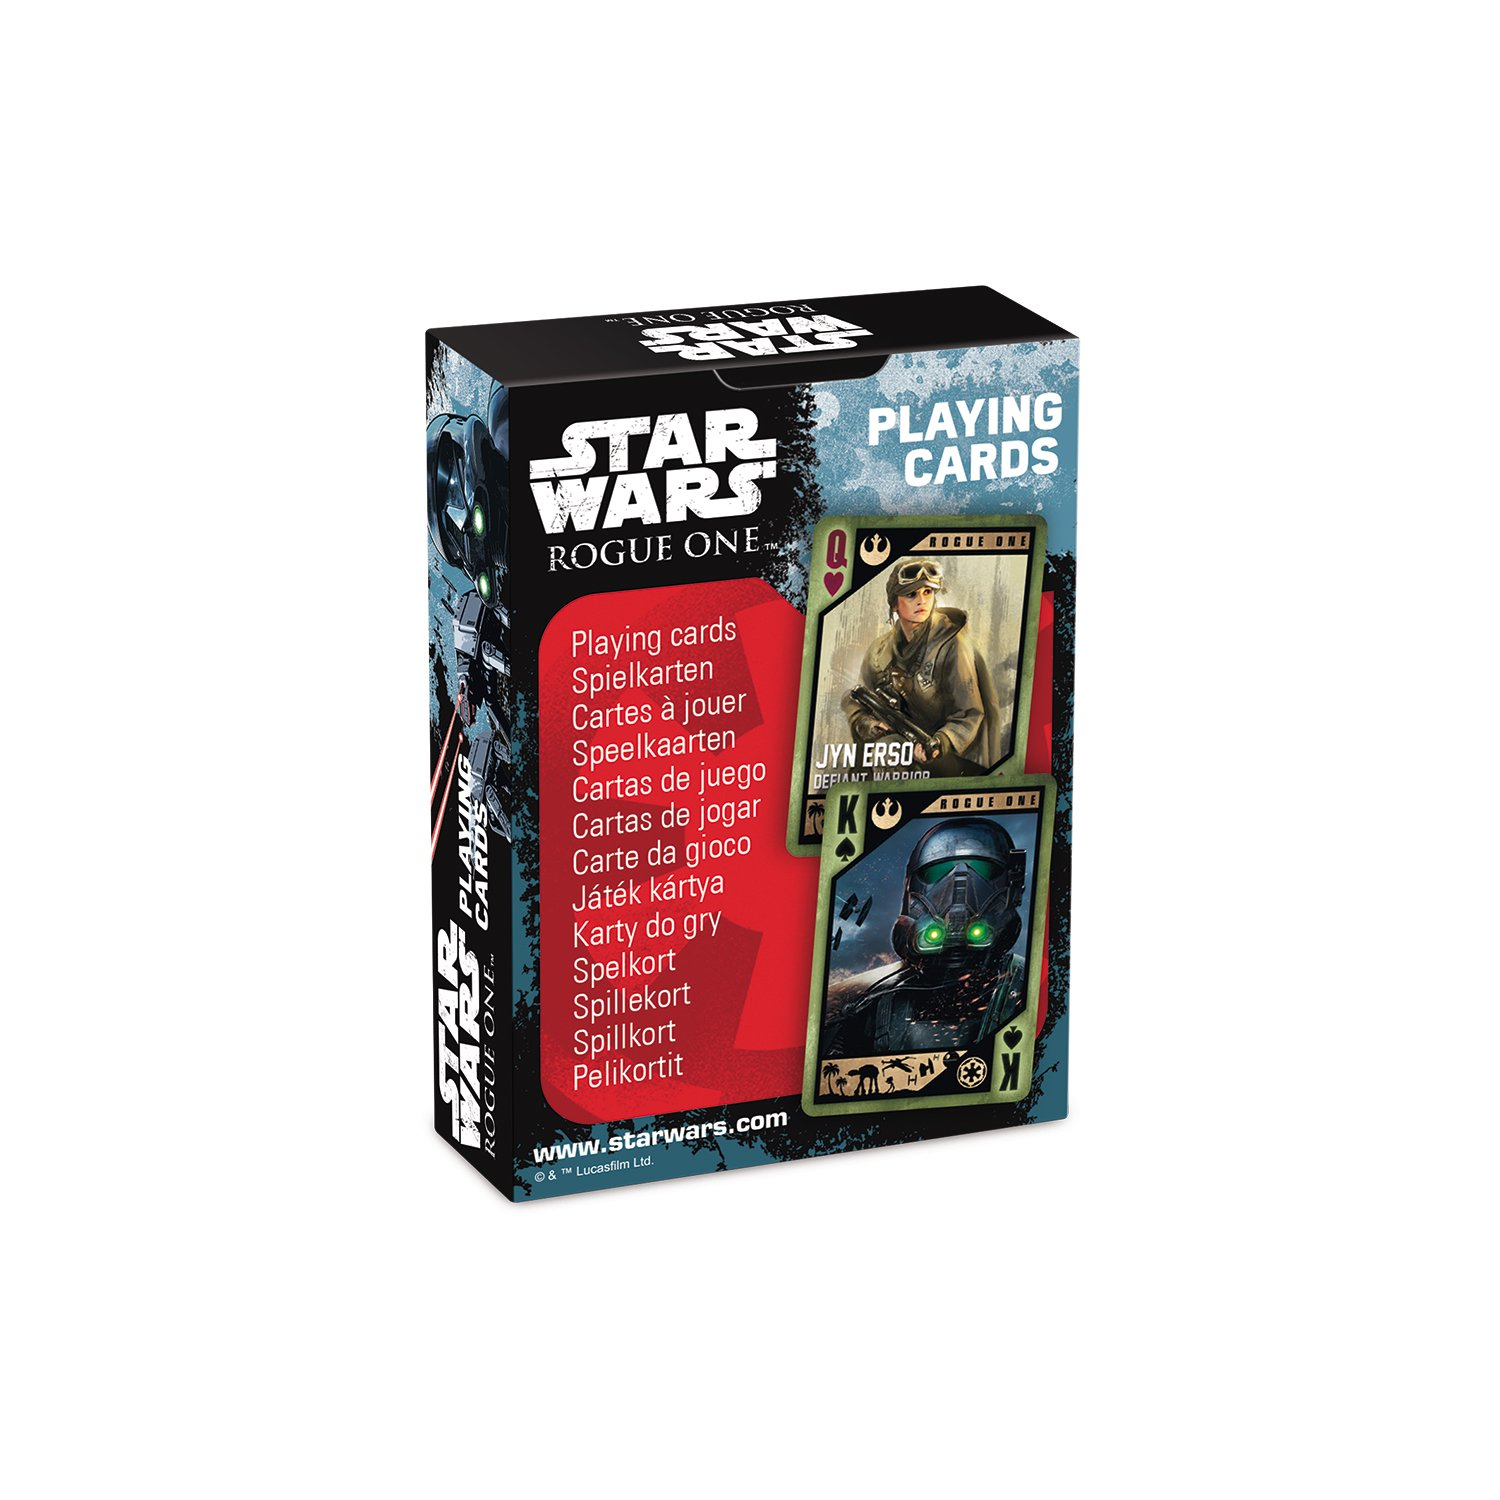 Amazon.com: Star Wars - Rogue One Playing Cards: Home & Kitchen